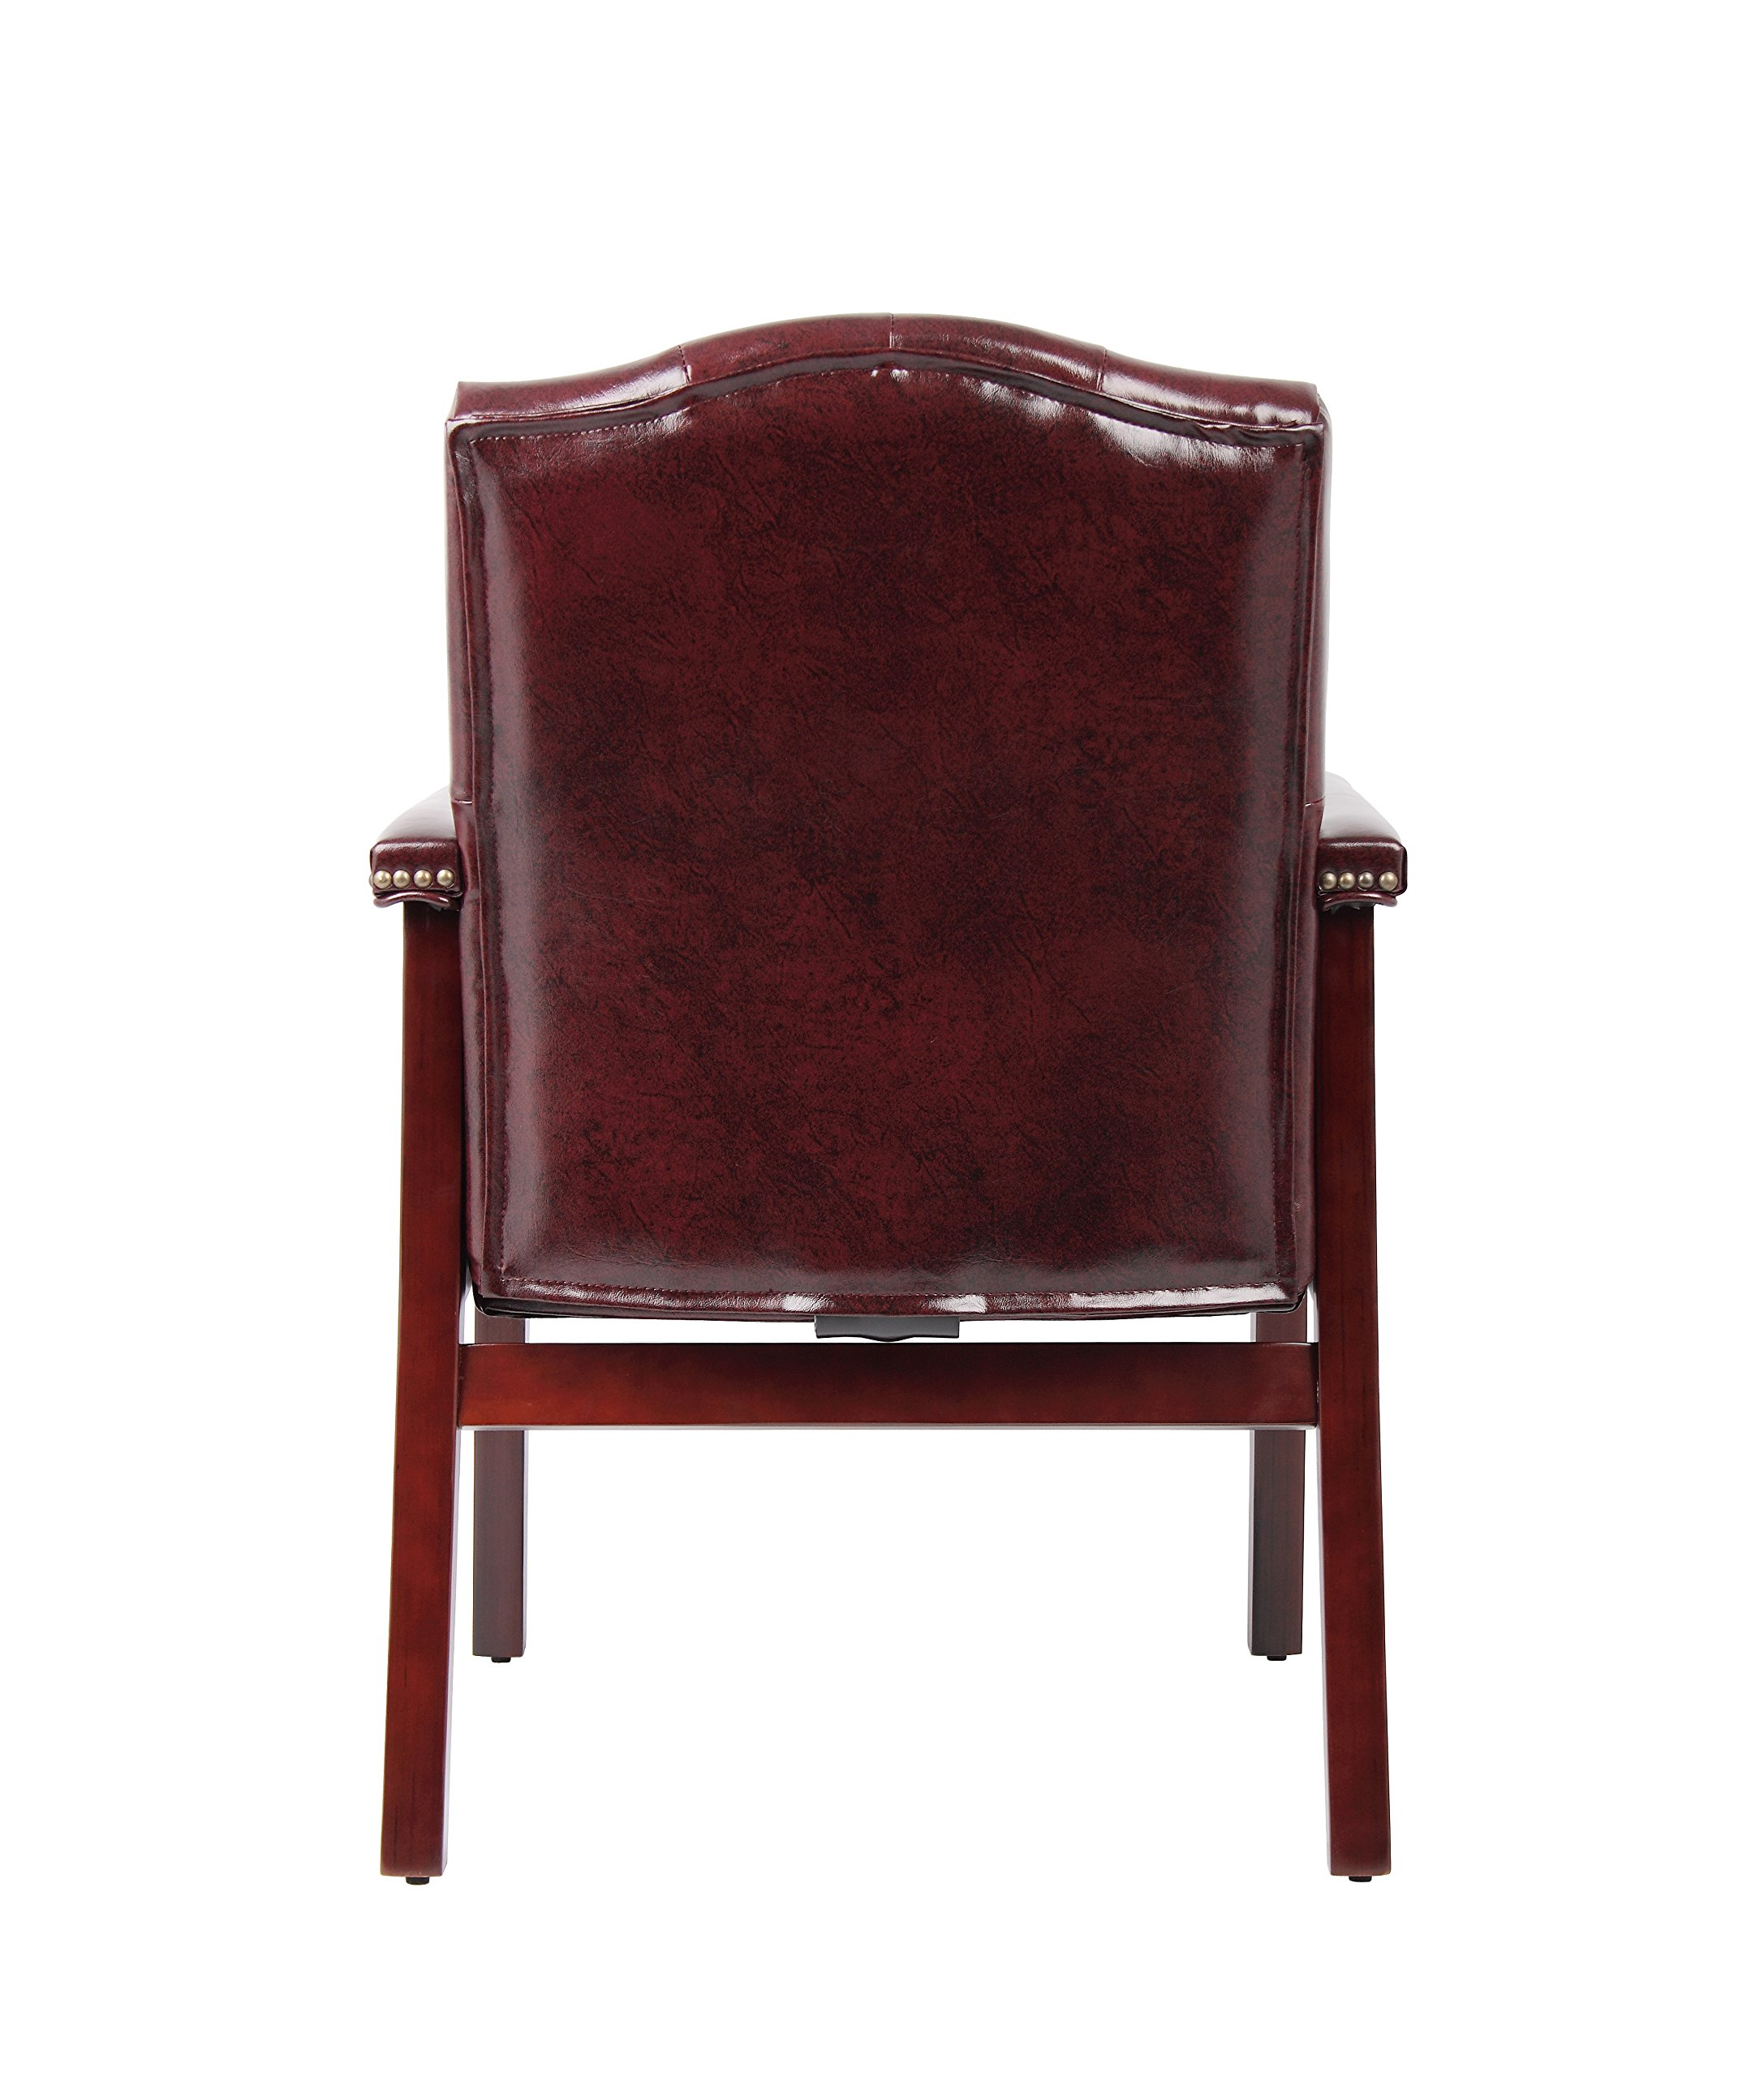 Boss Office Products B959-BY Ivy League Executive Guest Chair in Burgundy by Boss Office Products (Image #2)